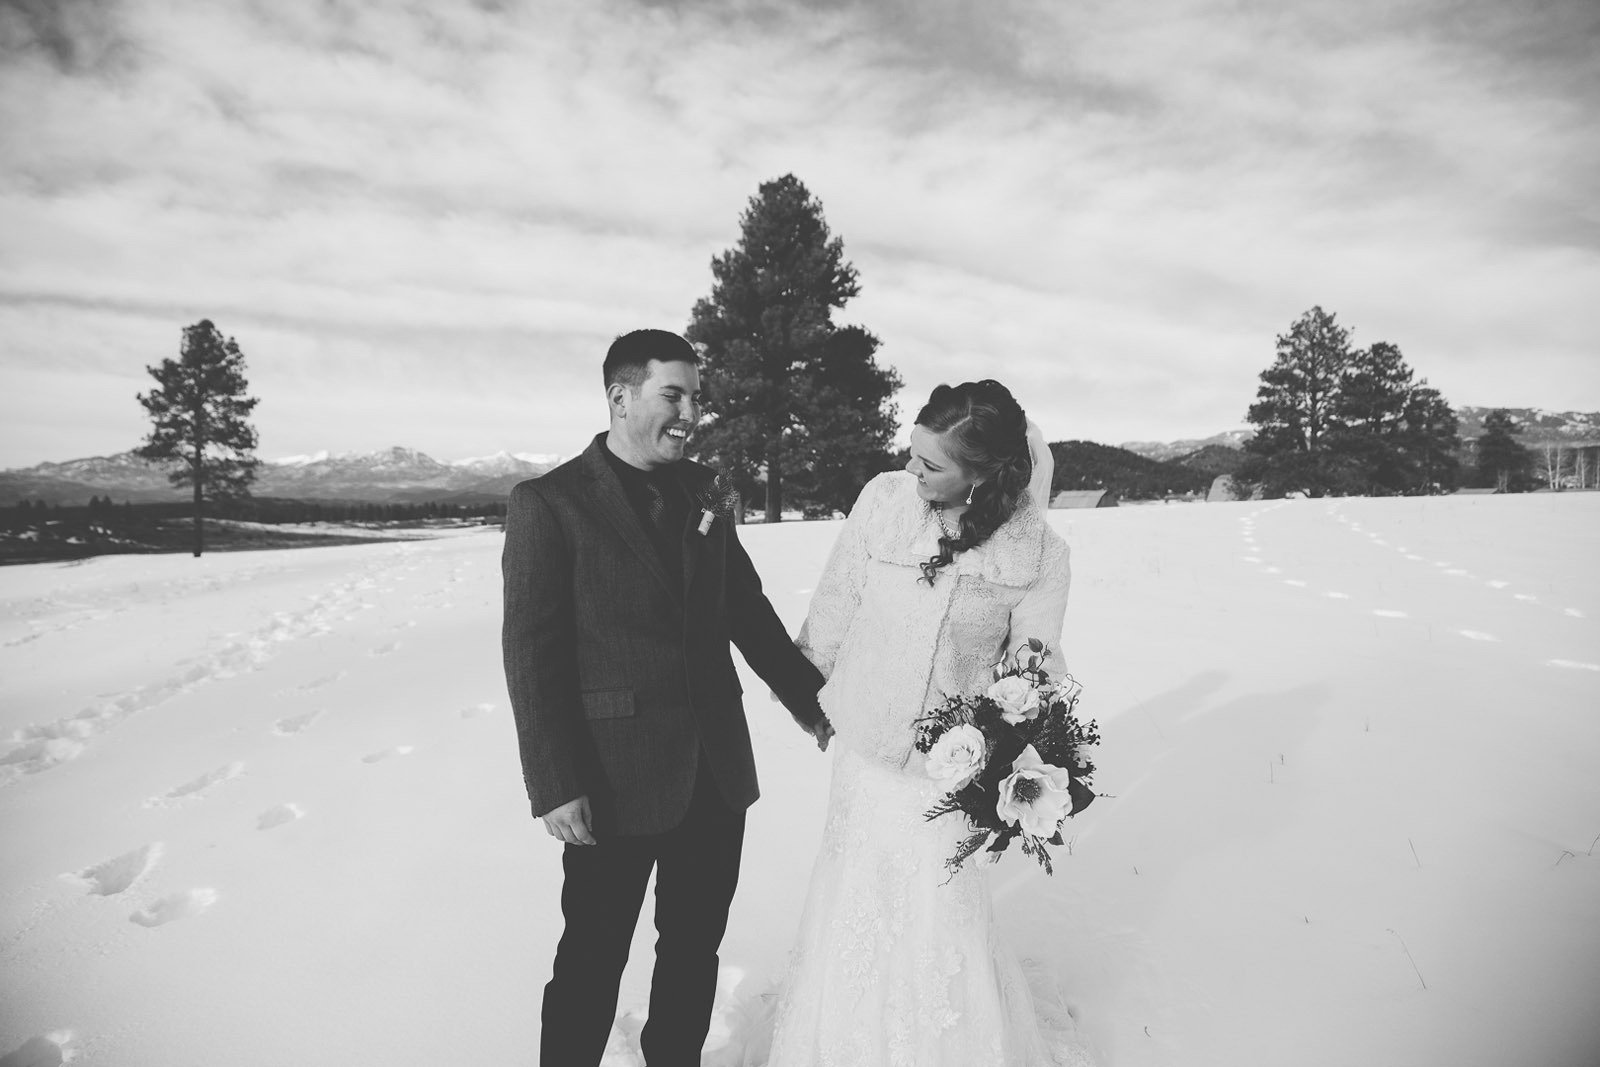 136-wedding-photographer-captures-newlyweds-in-snow-during-a-winter-snow-wedding-in-the-mountains-in-colorado